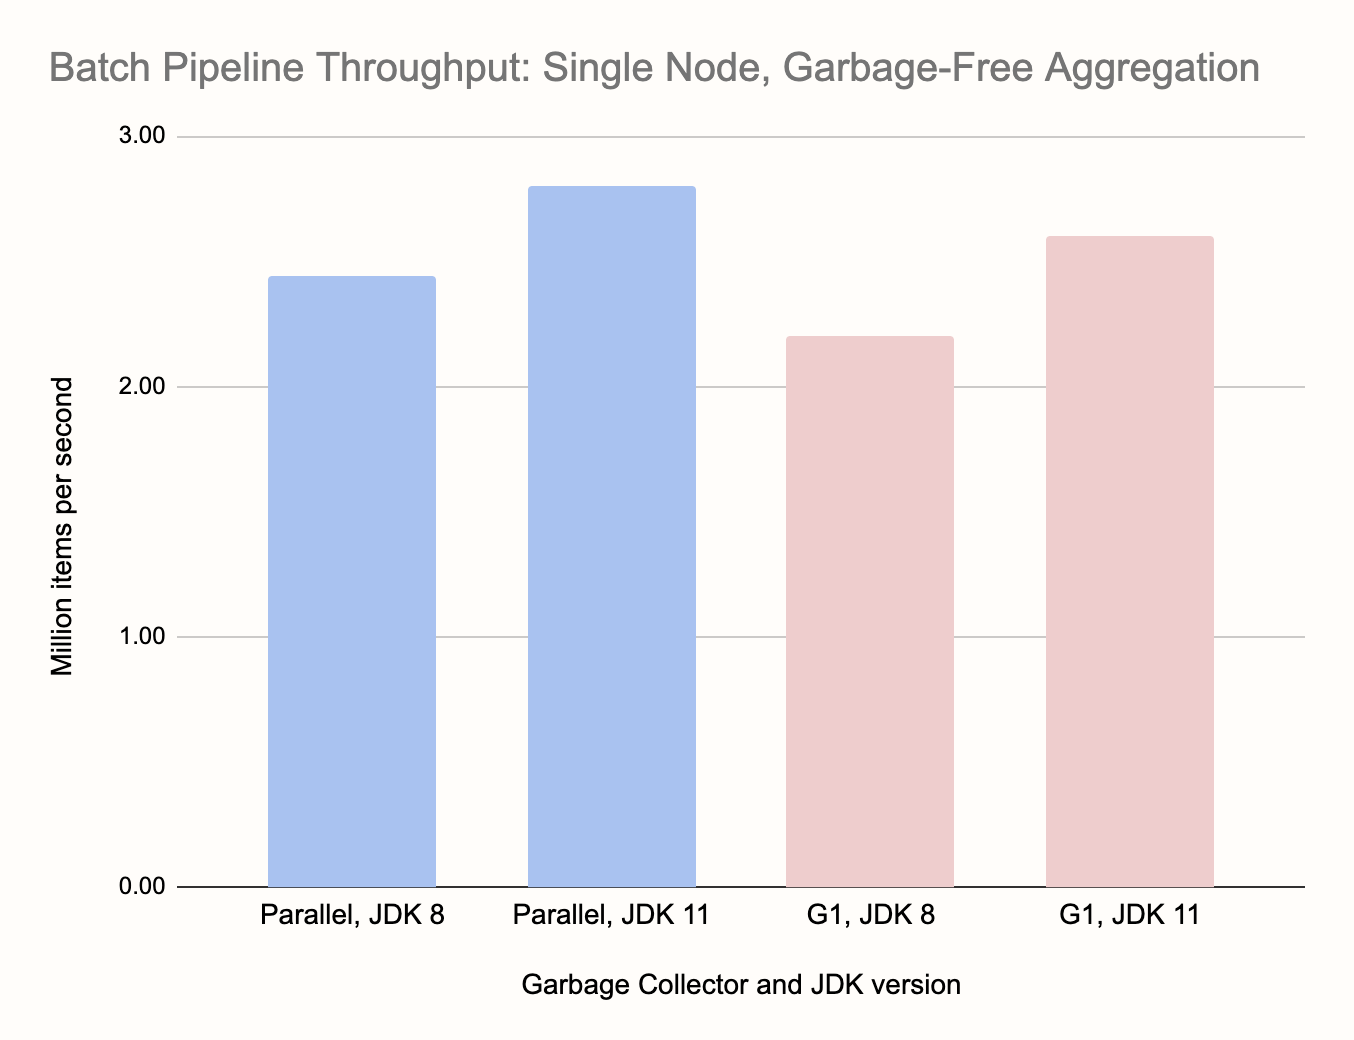 Single-node Batch pipeline with garbage-free aggregation